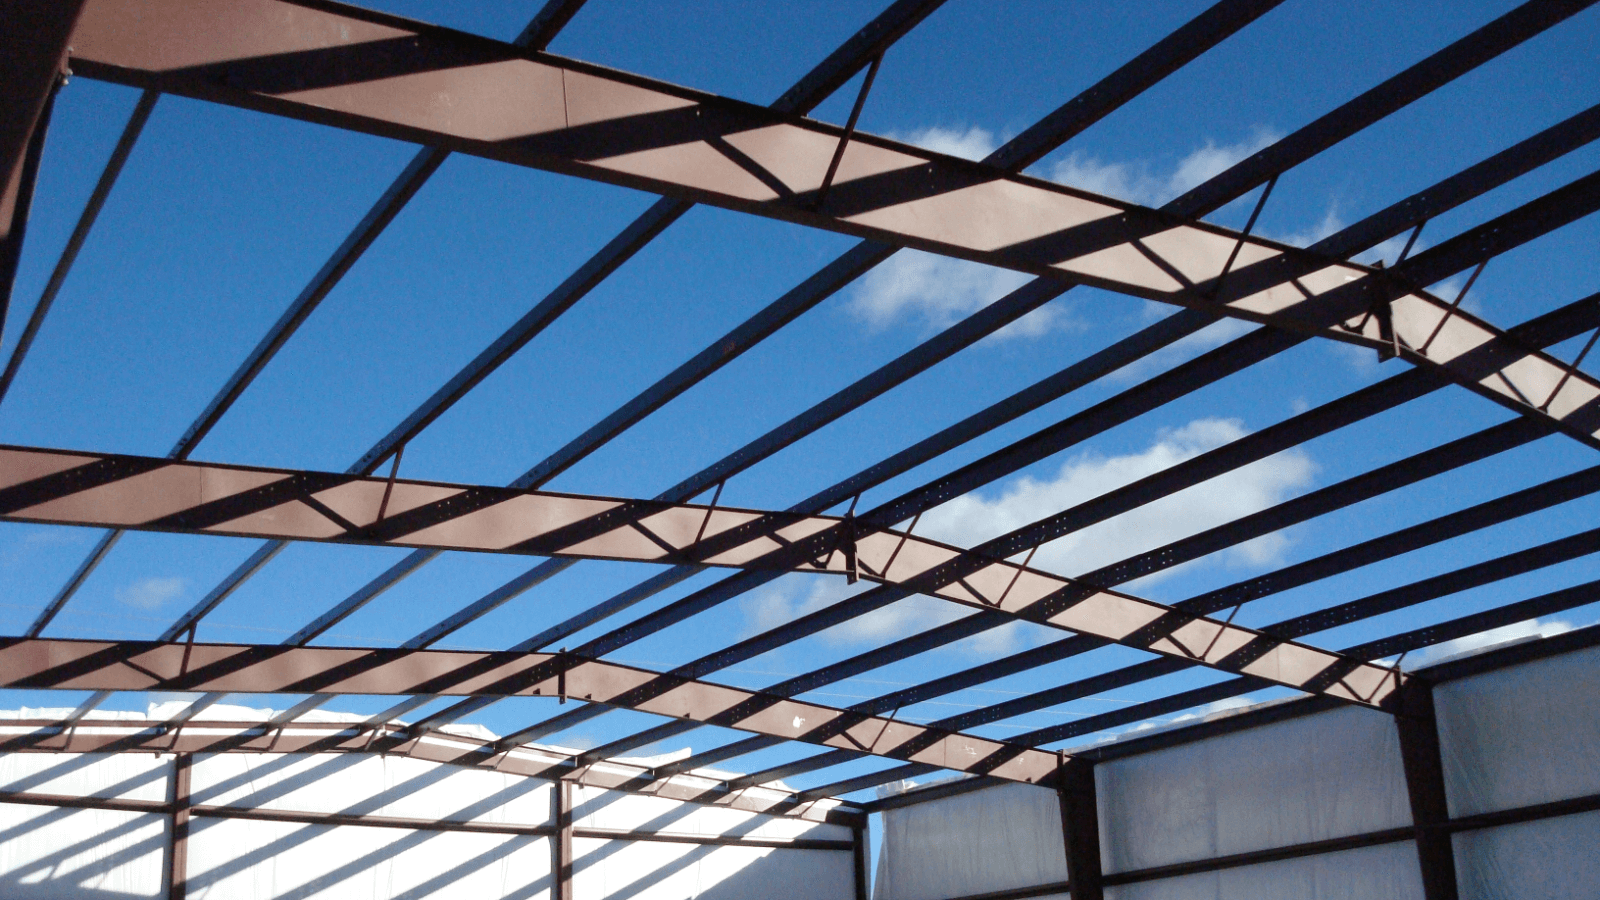 Picture of bare roof beams against a clear blue sky